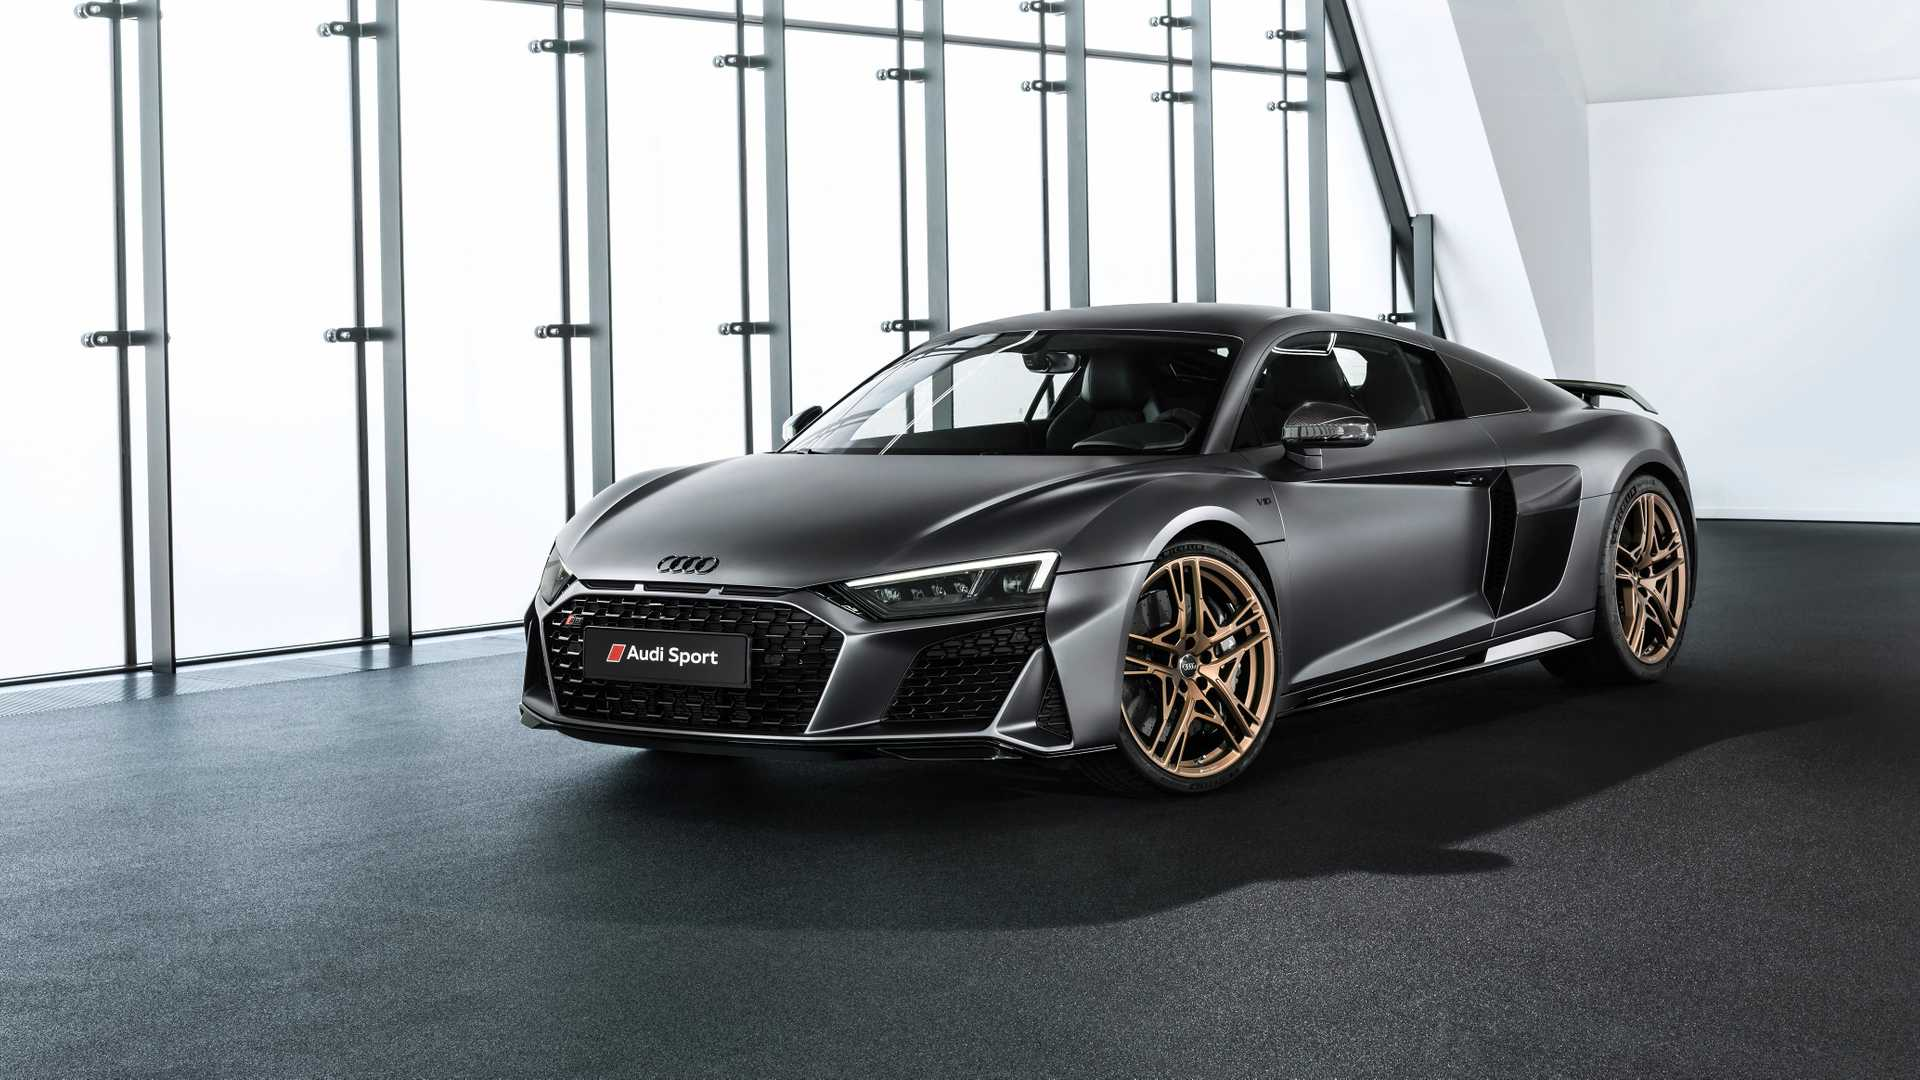 15 New Audi R8 2020 Specs and Review for Audi R8 2020